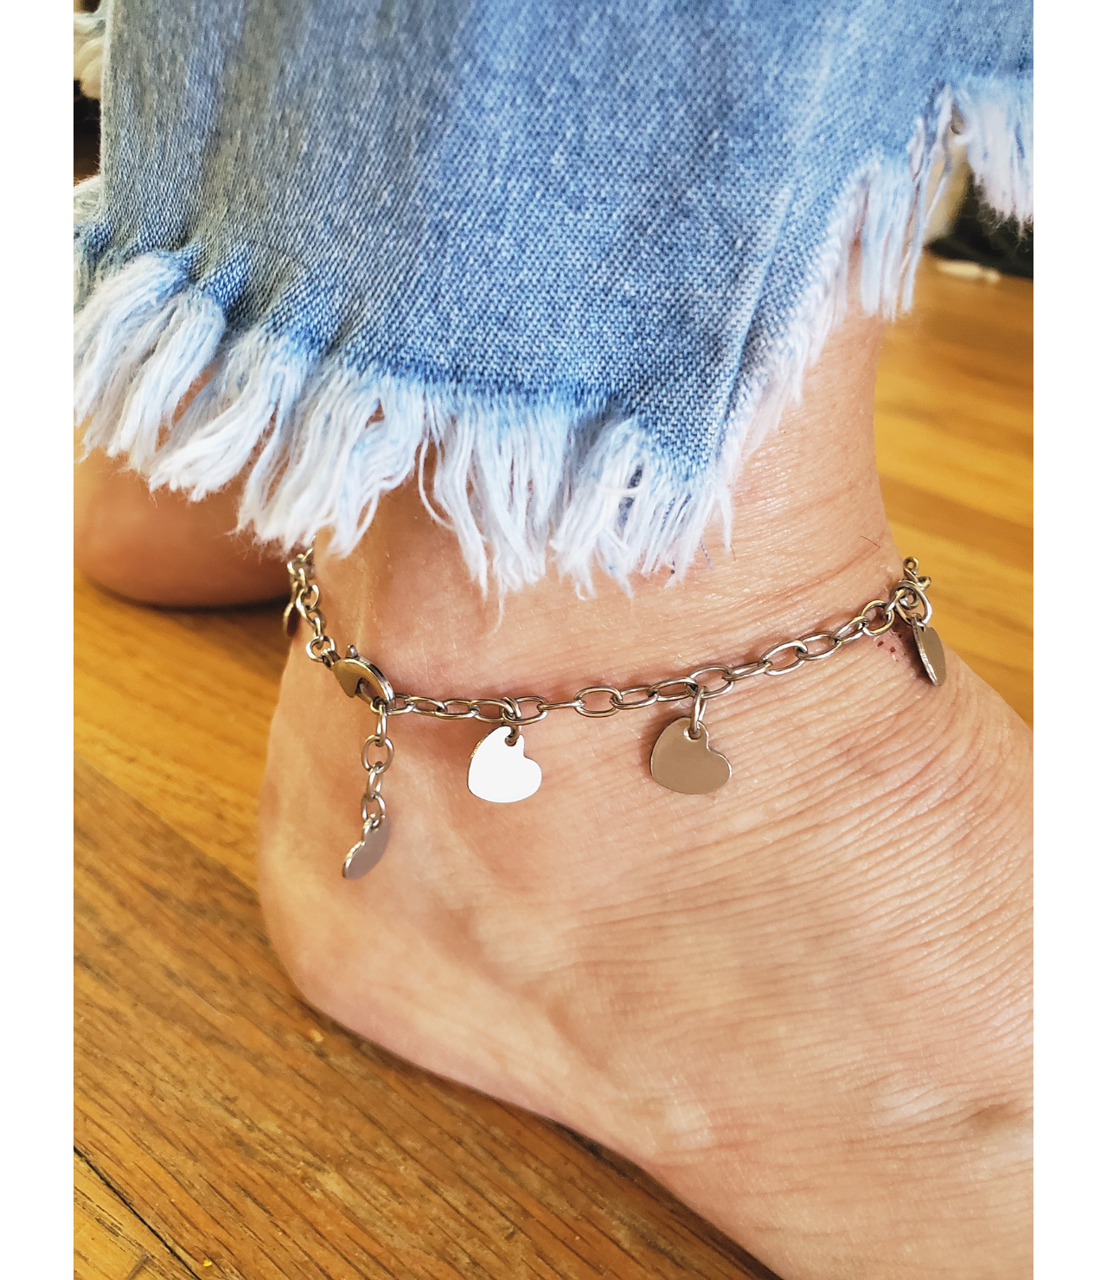 blue jeans and silver heart anklet on foot